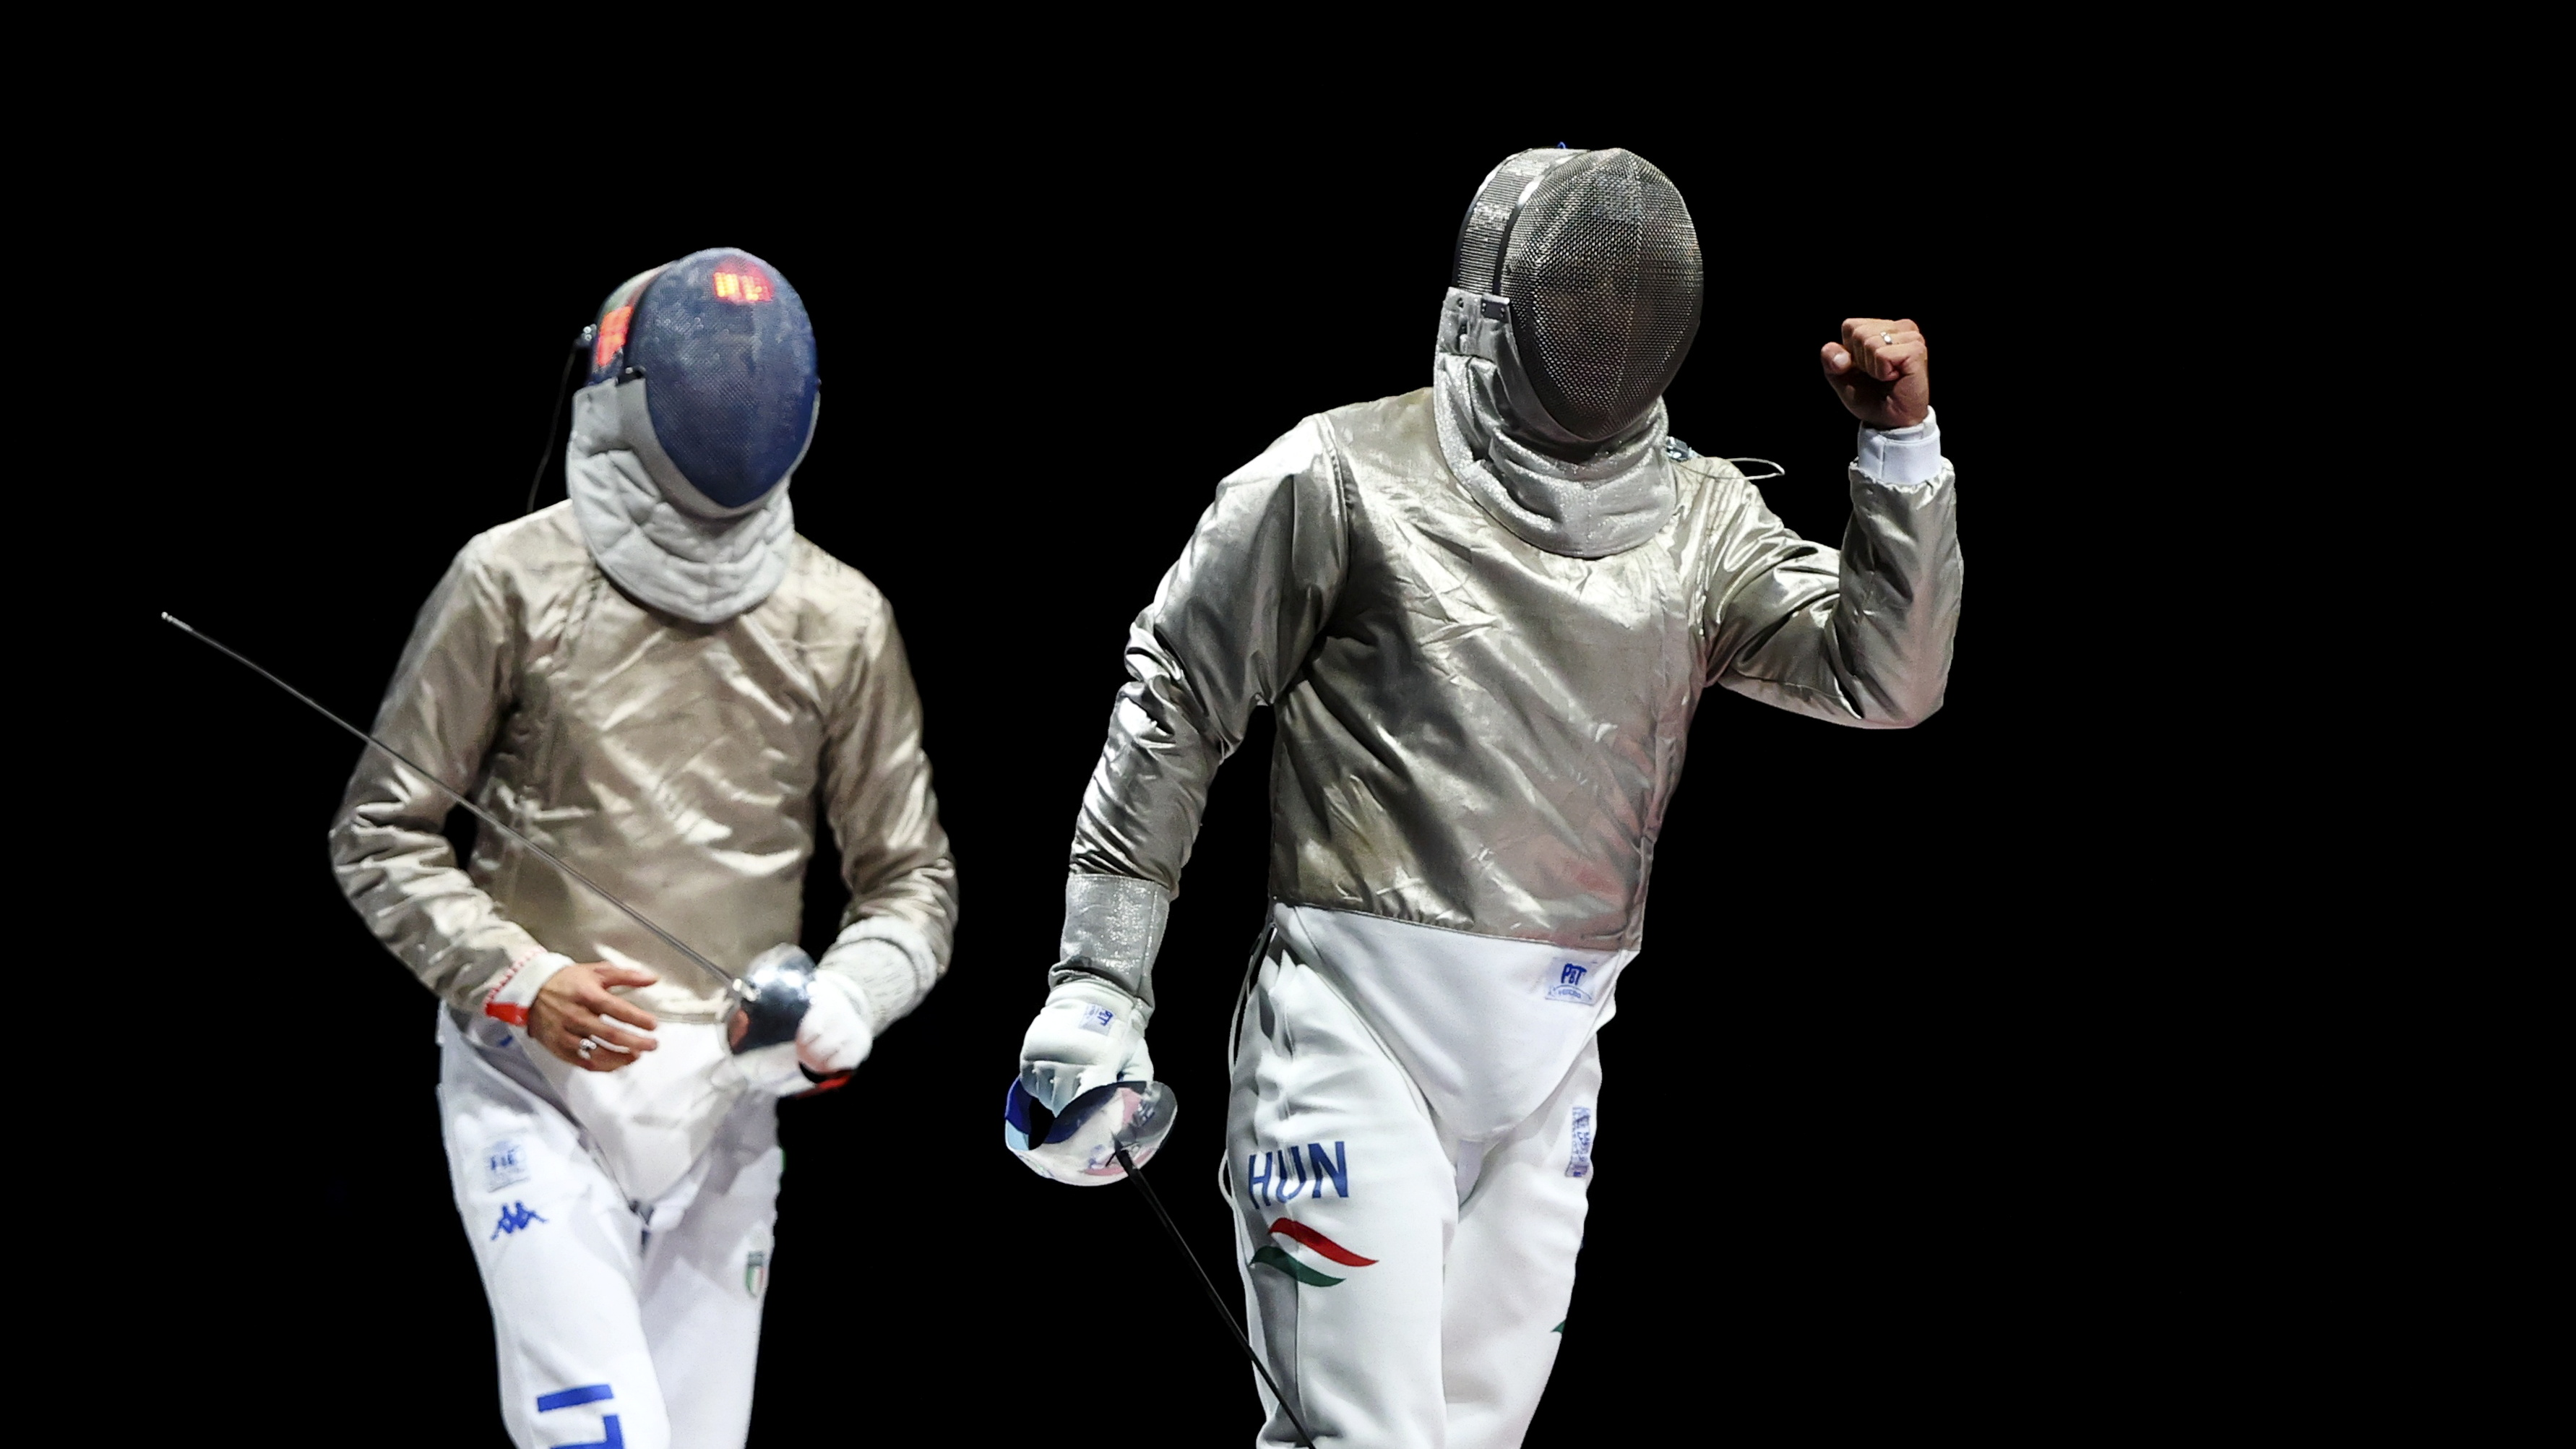 Tokyo 2020 Olympics - Fencing - Men's Individual Sabre - Gold medal match - Makuhari Messe Hall B - Chiba, Japan - July 24, 2021. Aron Szilagyi of Hungary reacts during the match as Luigi Samele of Italy looks on REUTERS/Maxim Shemetov